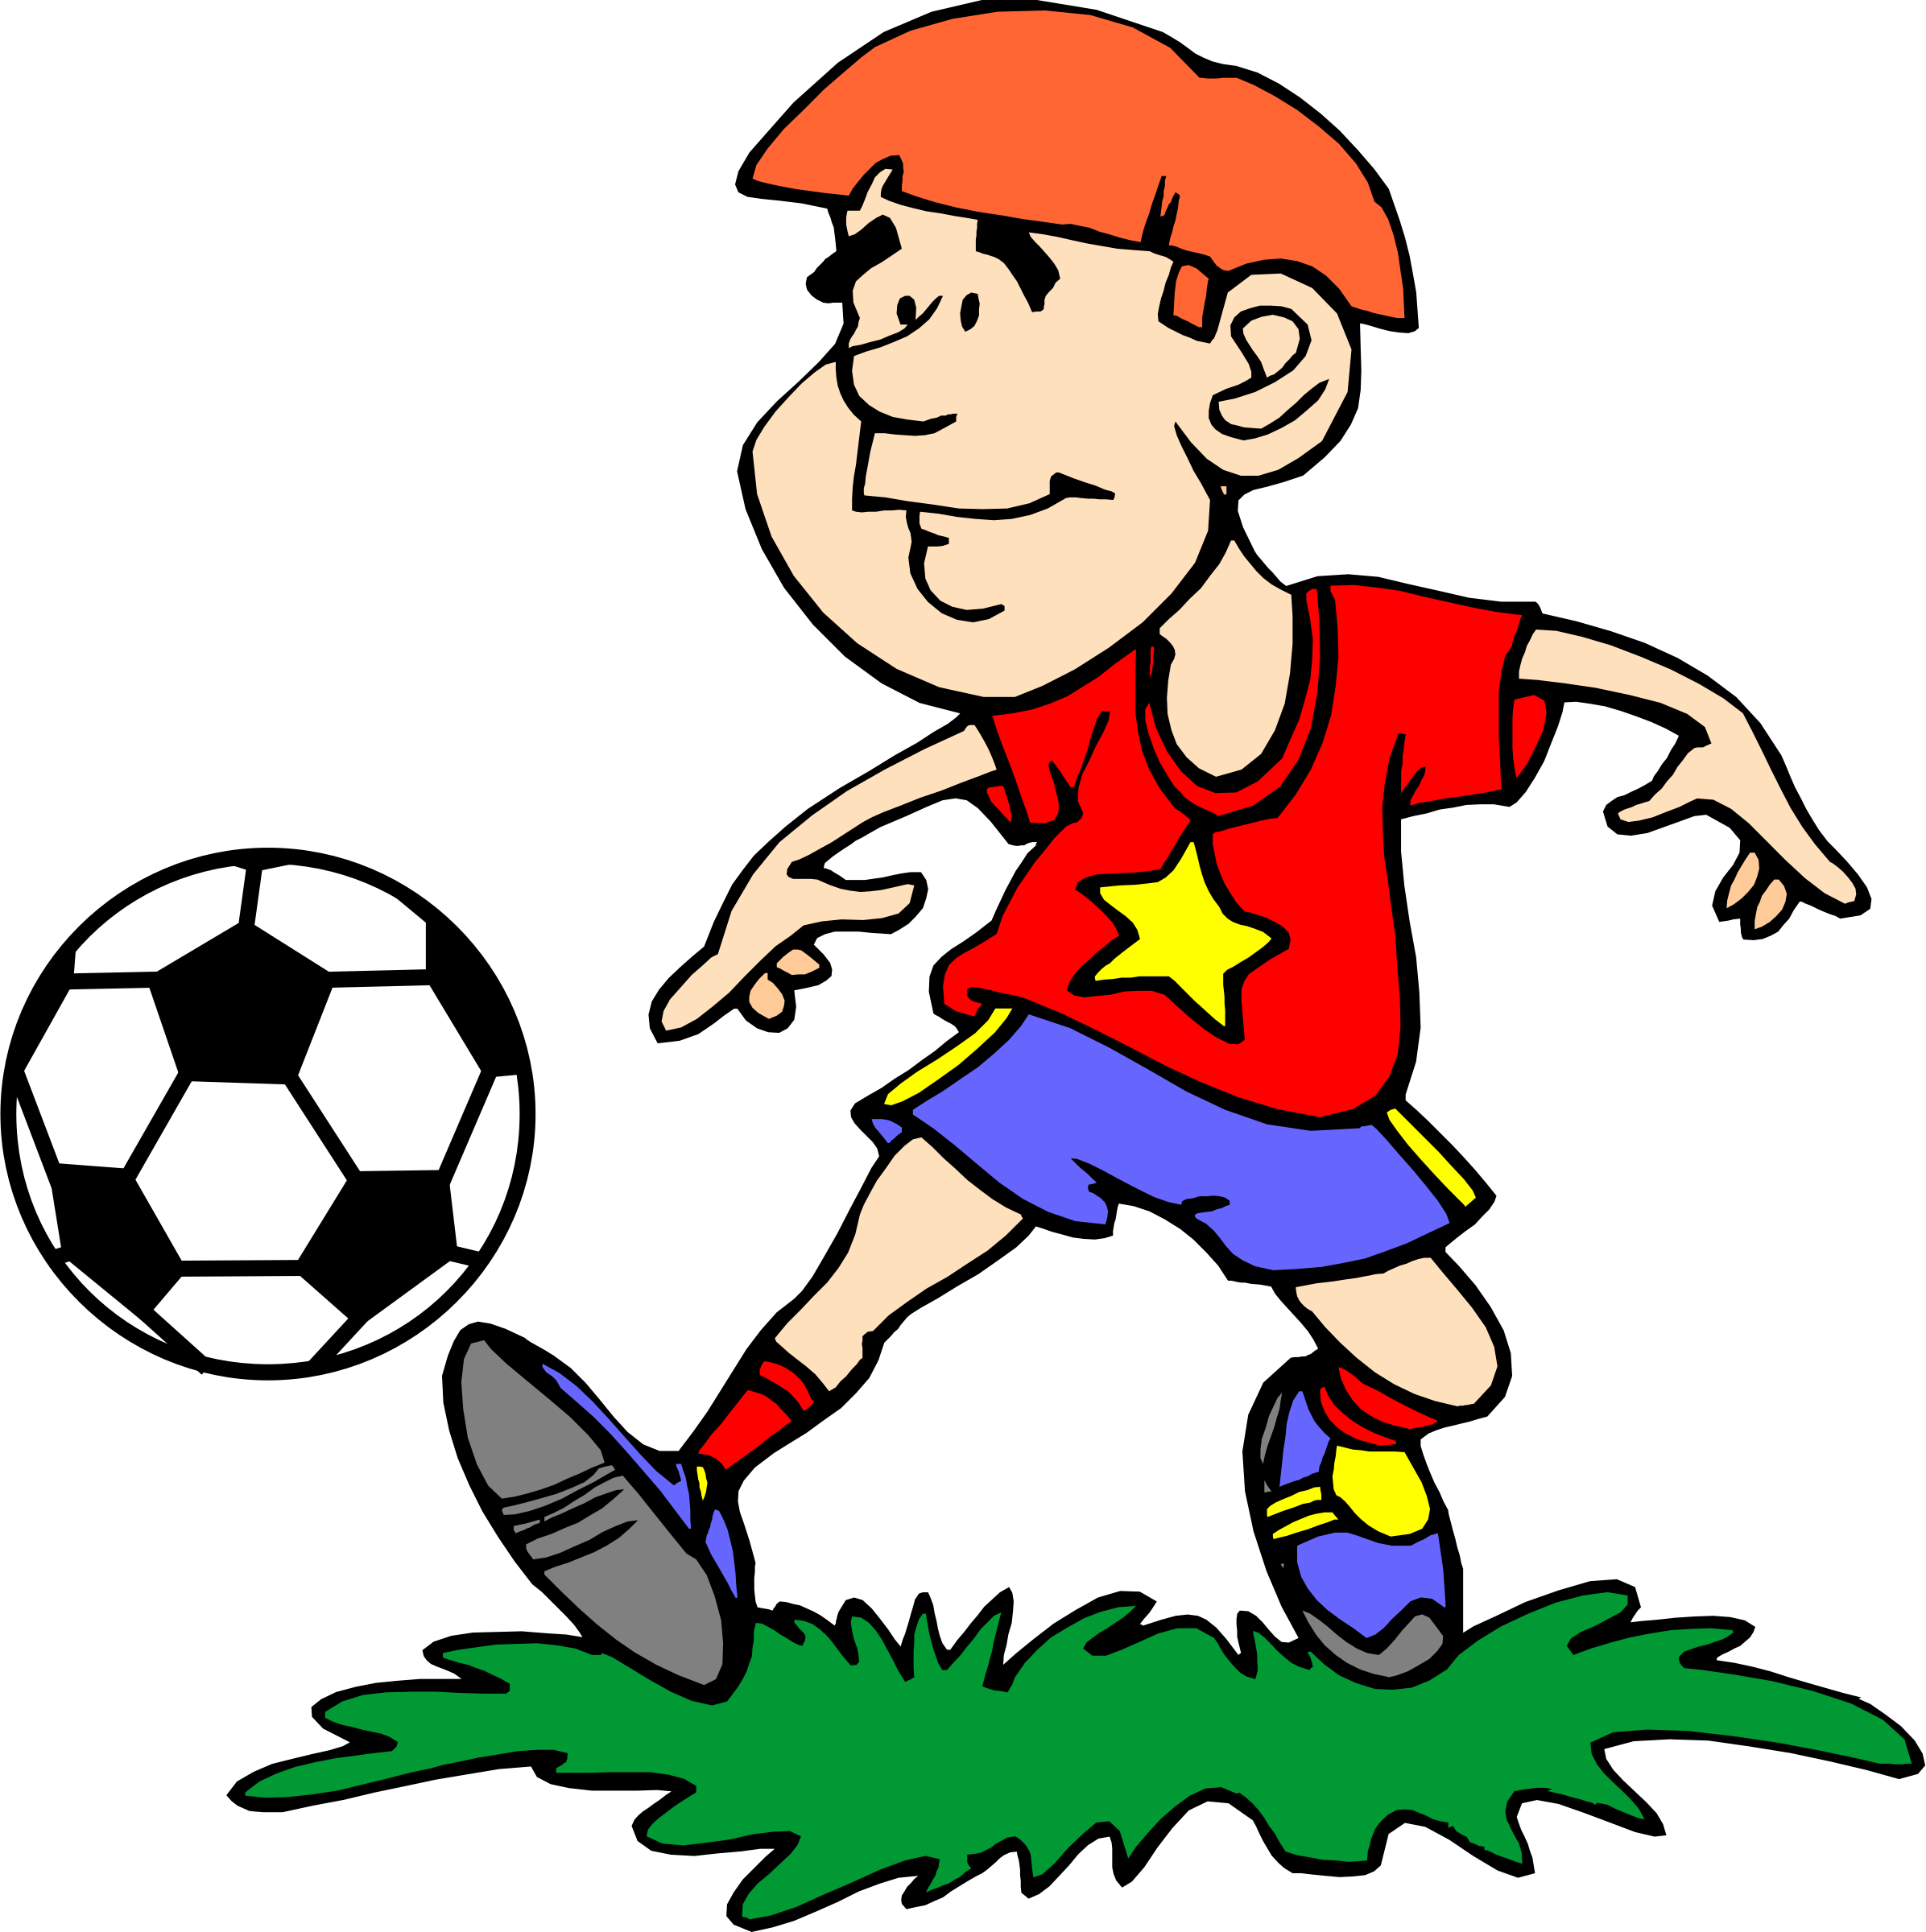 Player big image png. Sports clipart soccer